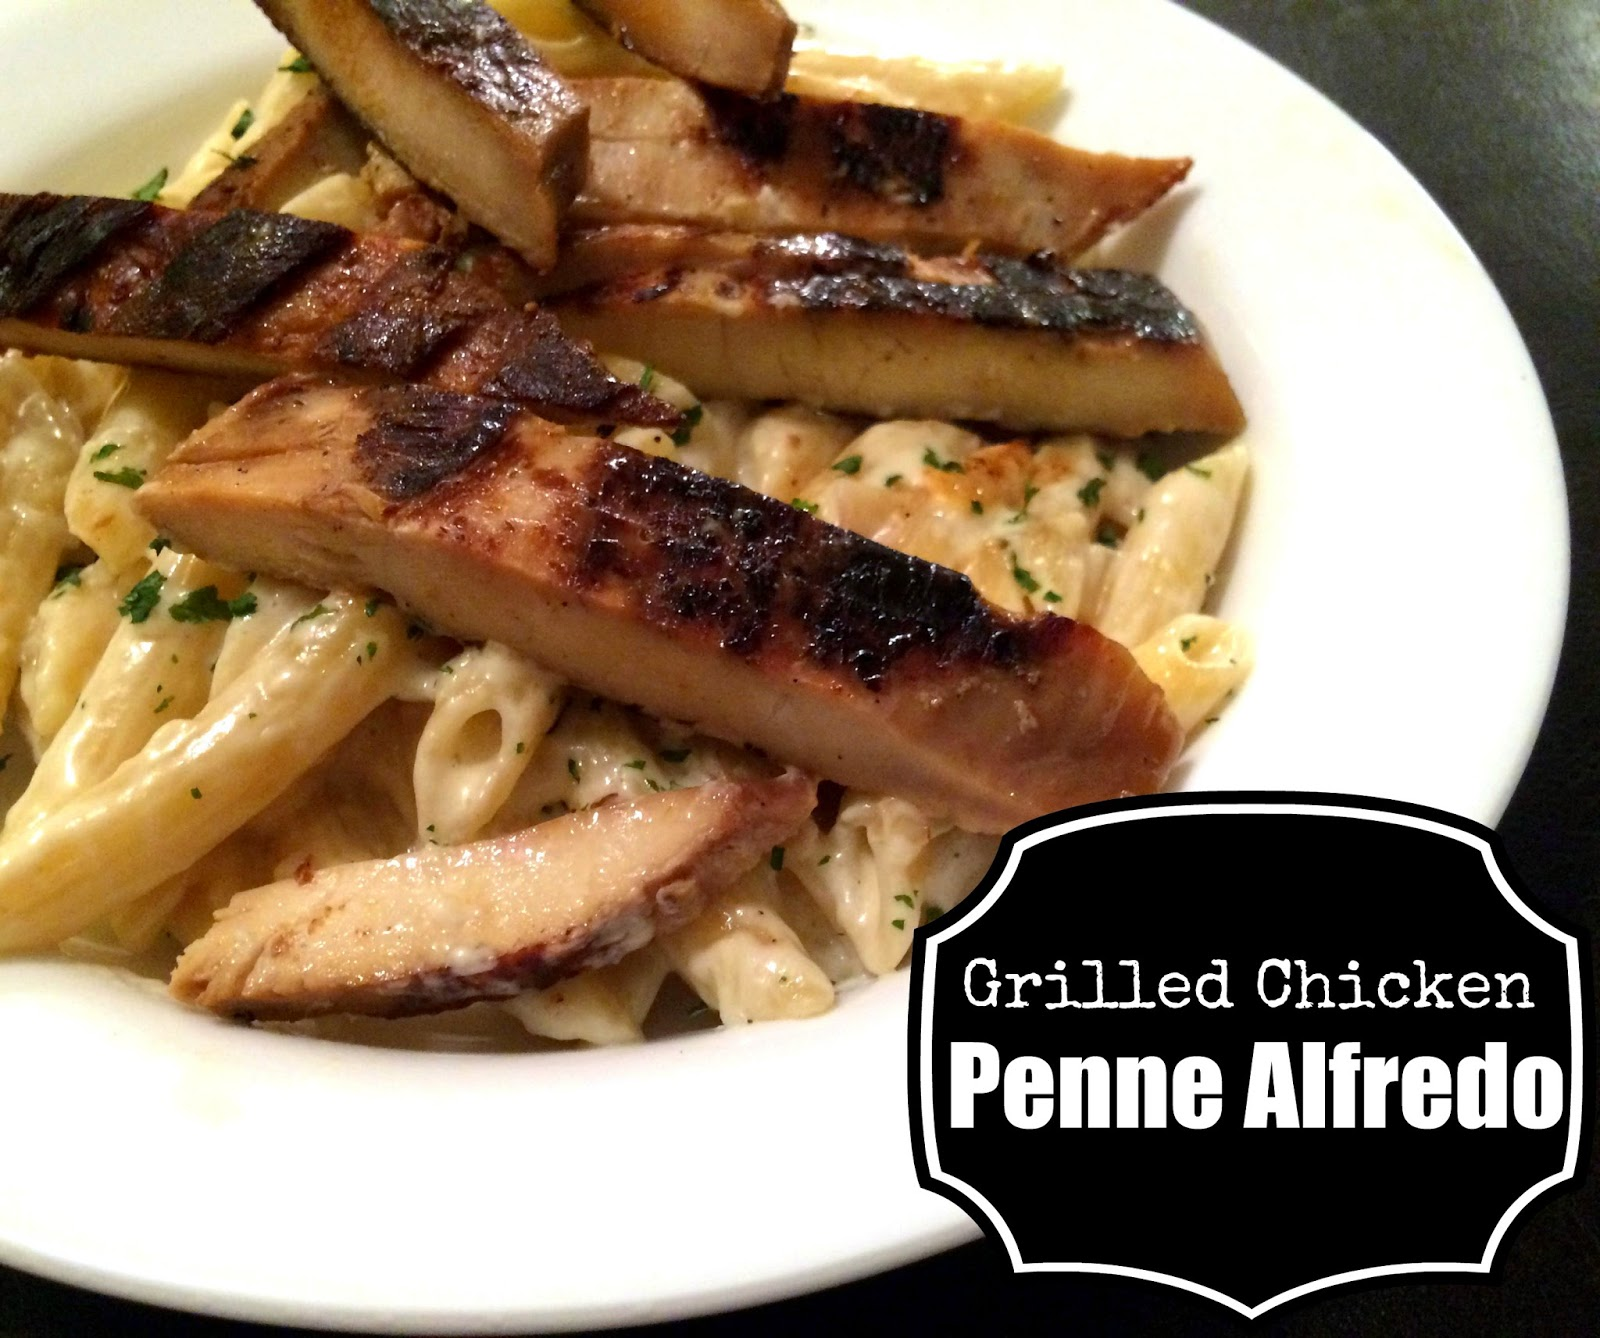 Grilled Chicken Penne Alfredo | Aunt Bee's Recipes